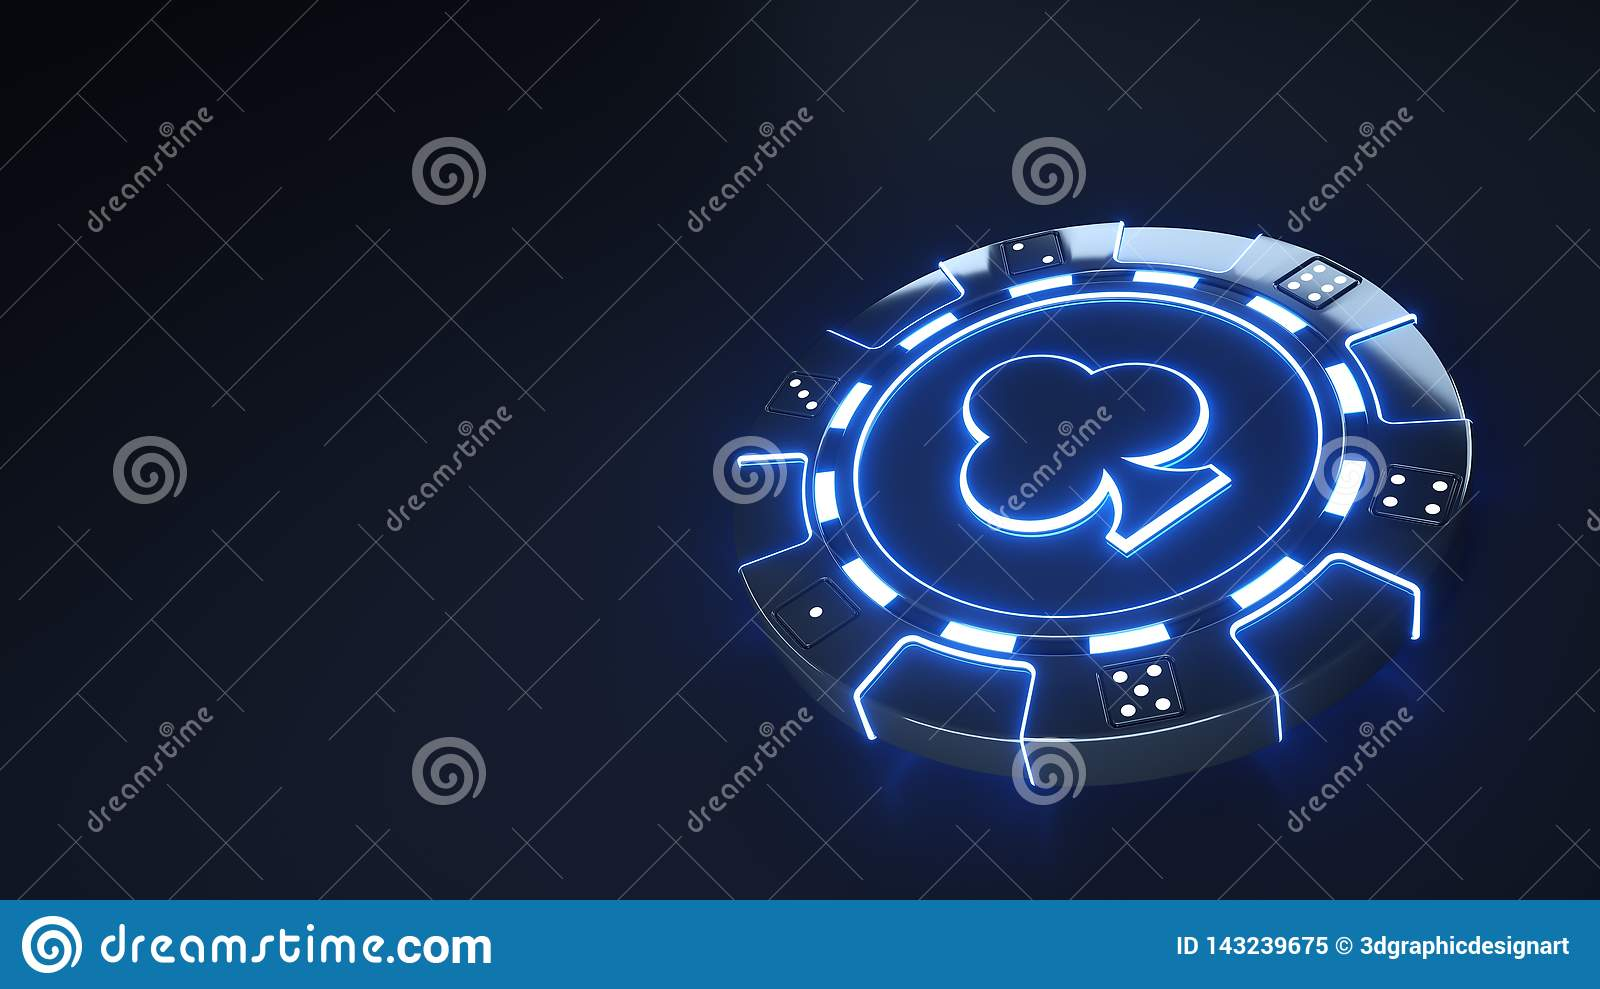 Casino Chip clubs Concept with glowing neon blue lights and Dice dots isolated on the black background - 3D Illustration